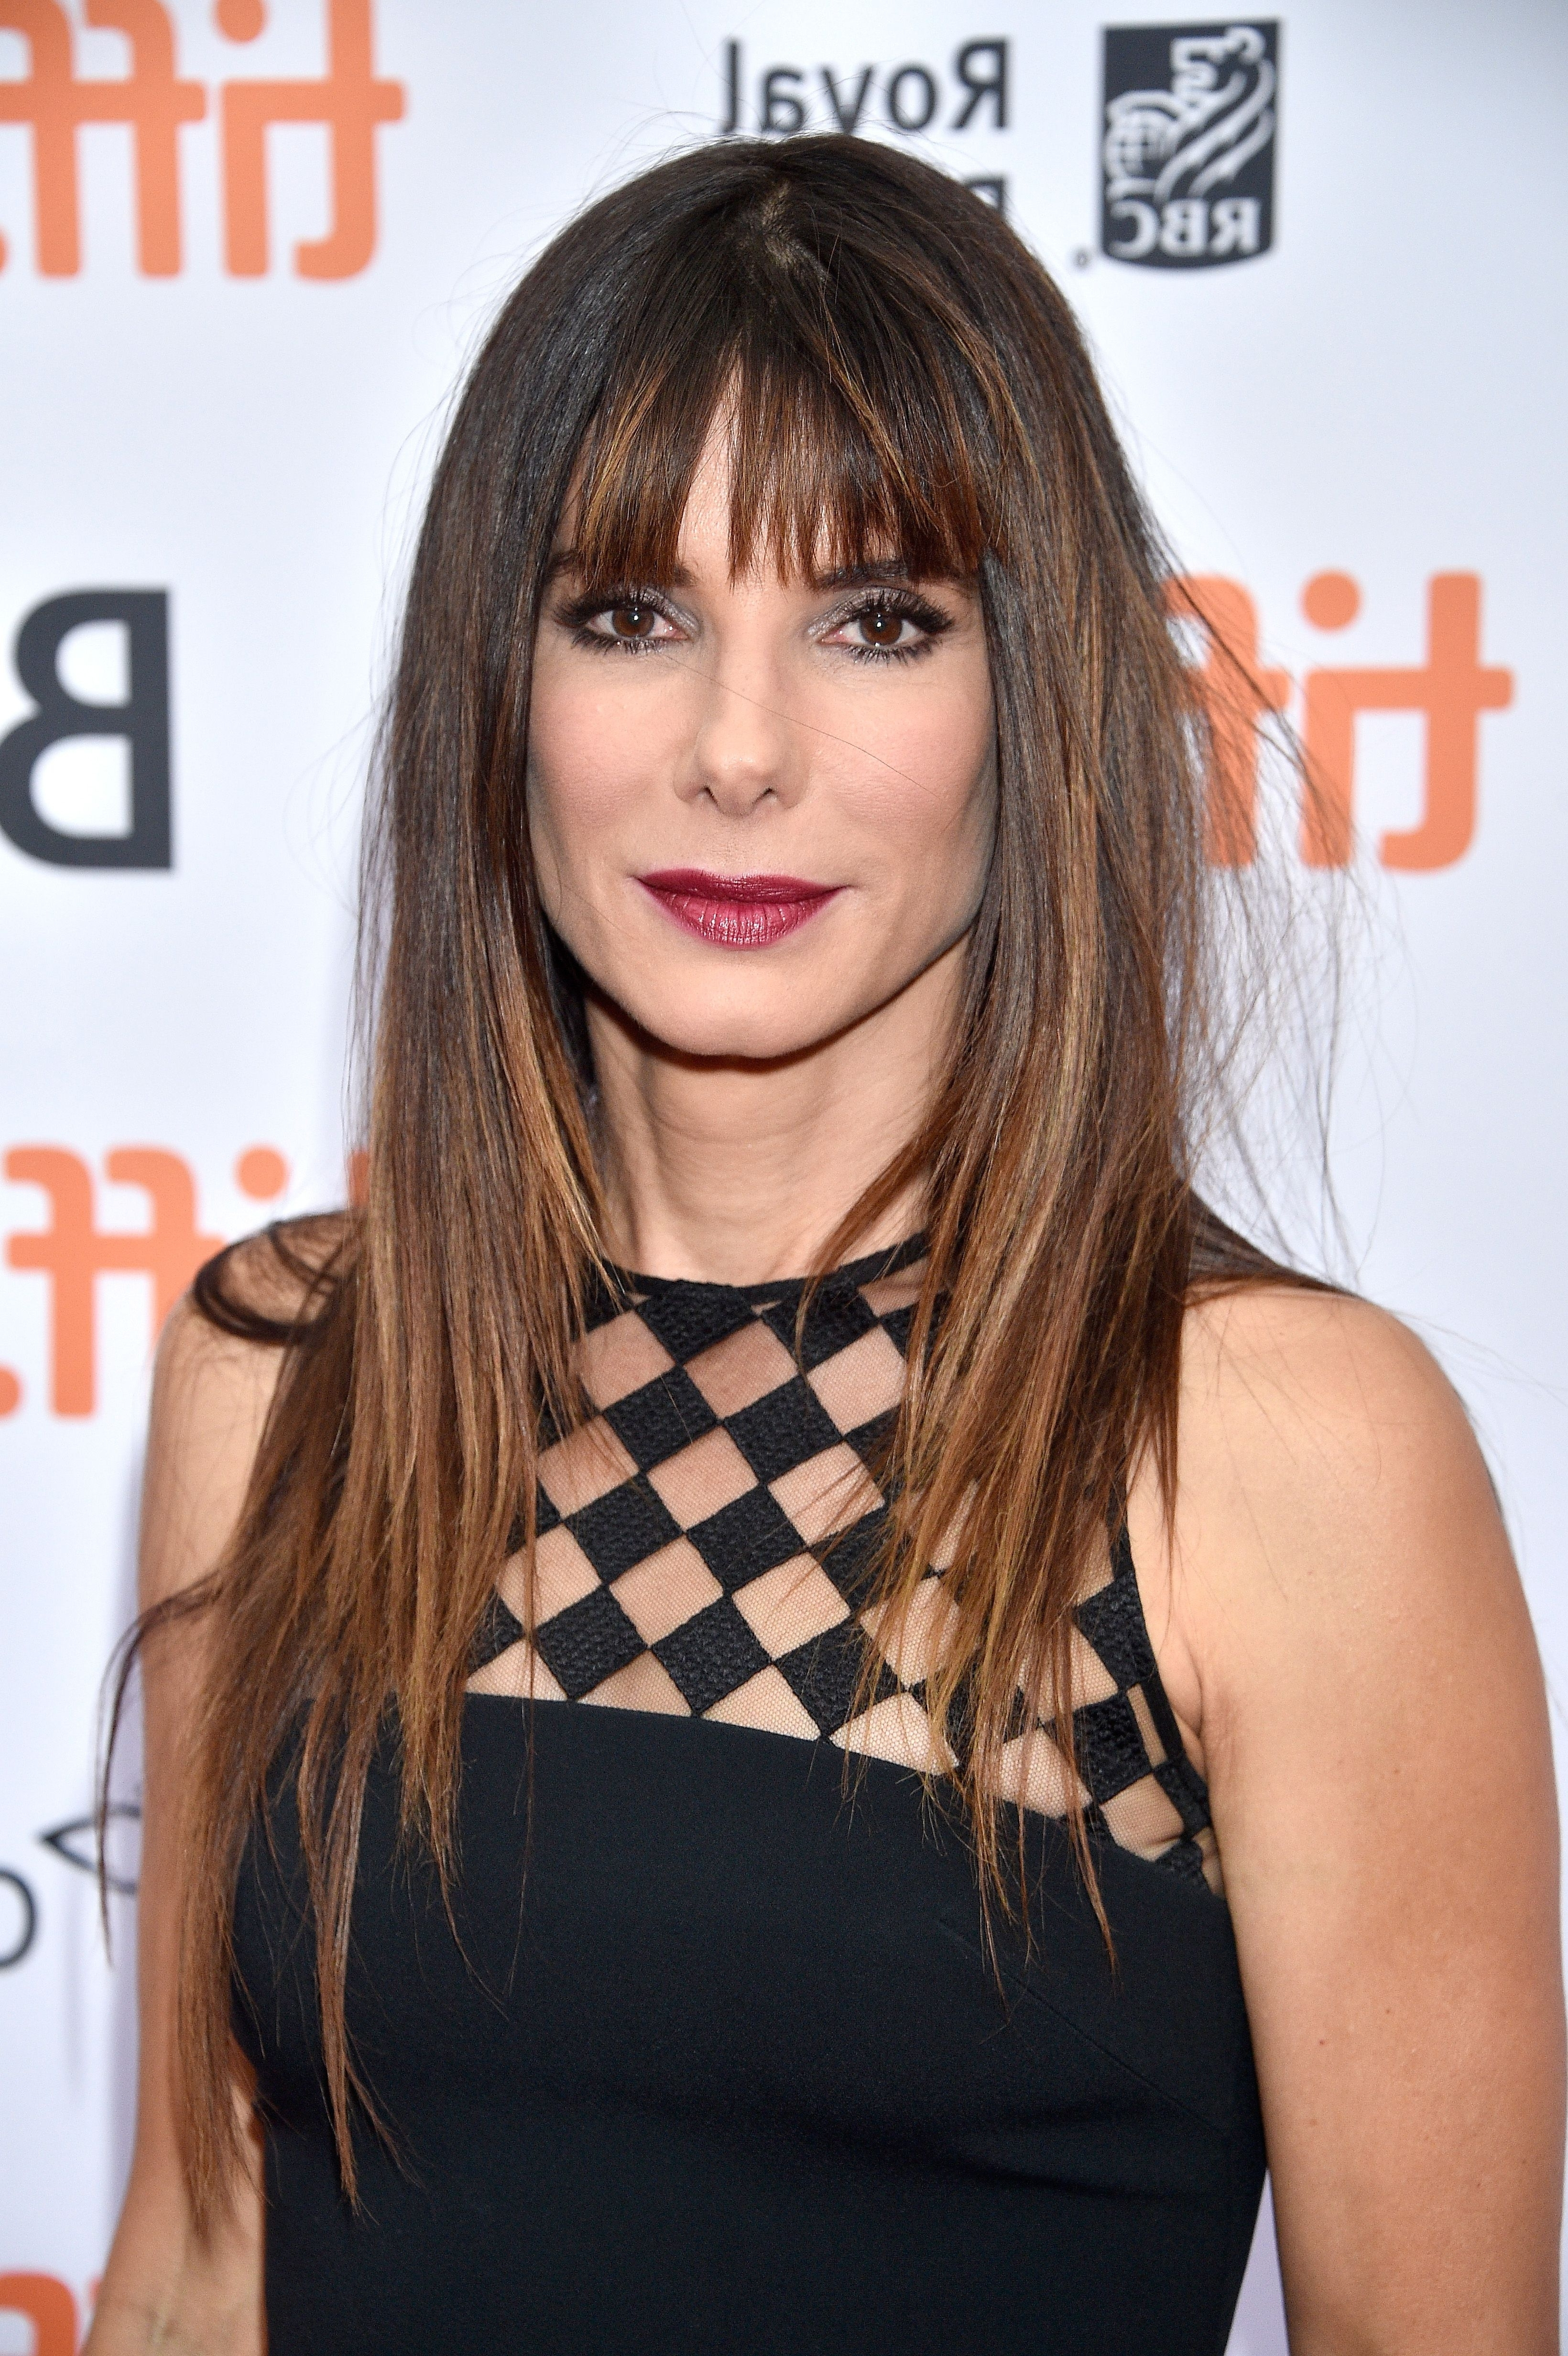 35 Best Hairstyles With Bangs – Photos Of Celebrity Haircuts With Bangs With Regard To Well Known Cropped Tousled Waves And Side Bangs Hairstyles (View 5 of 20)